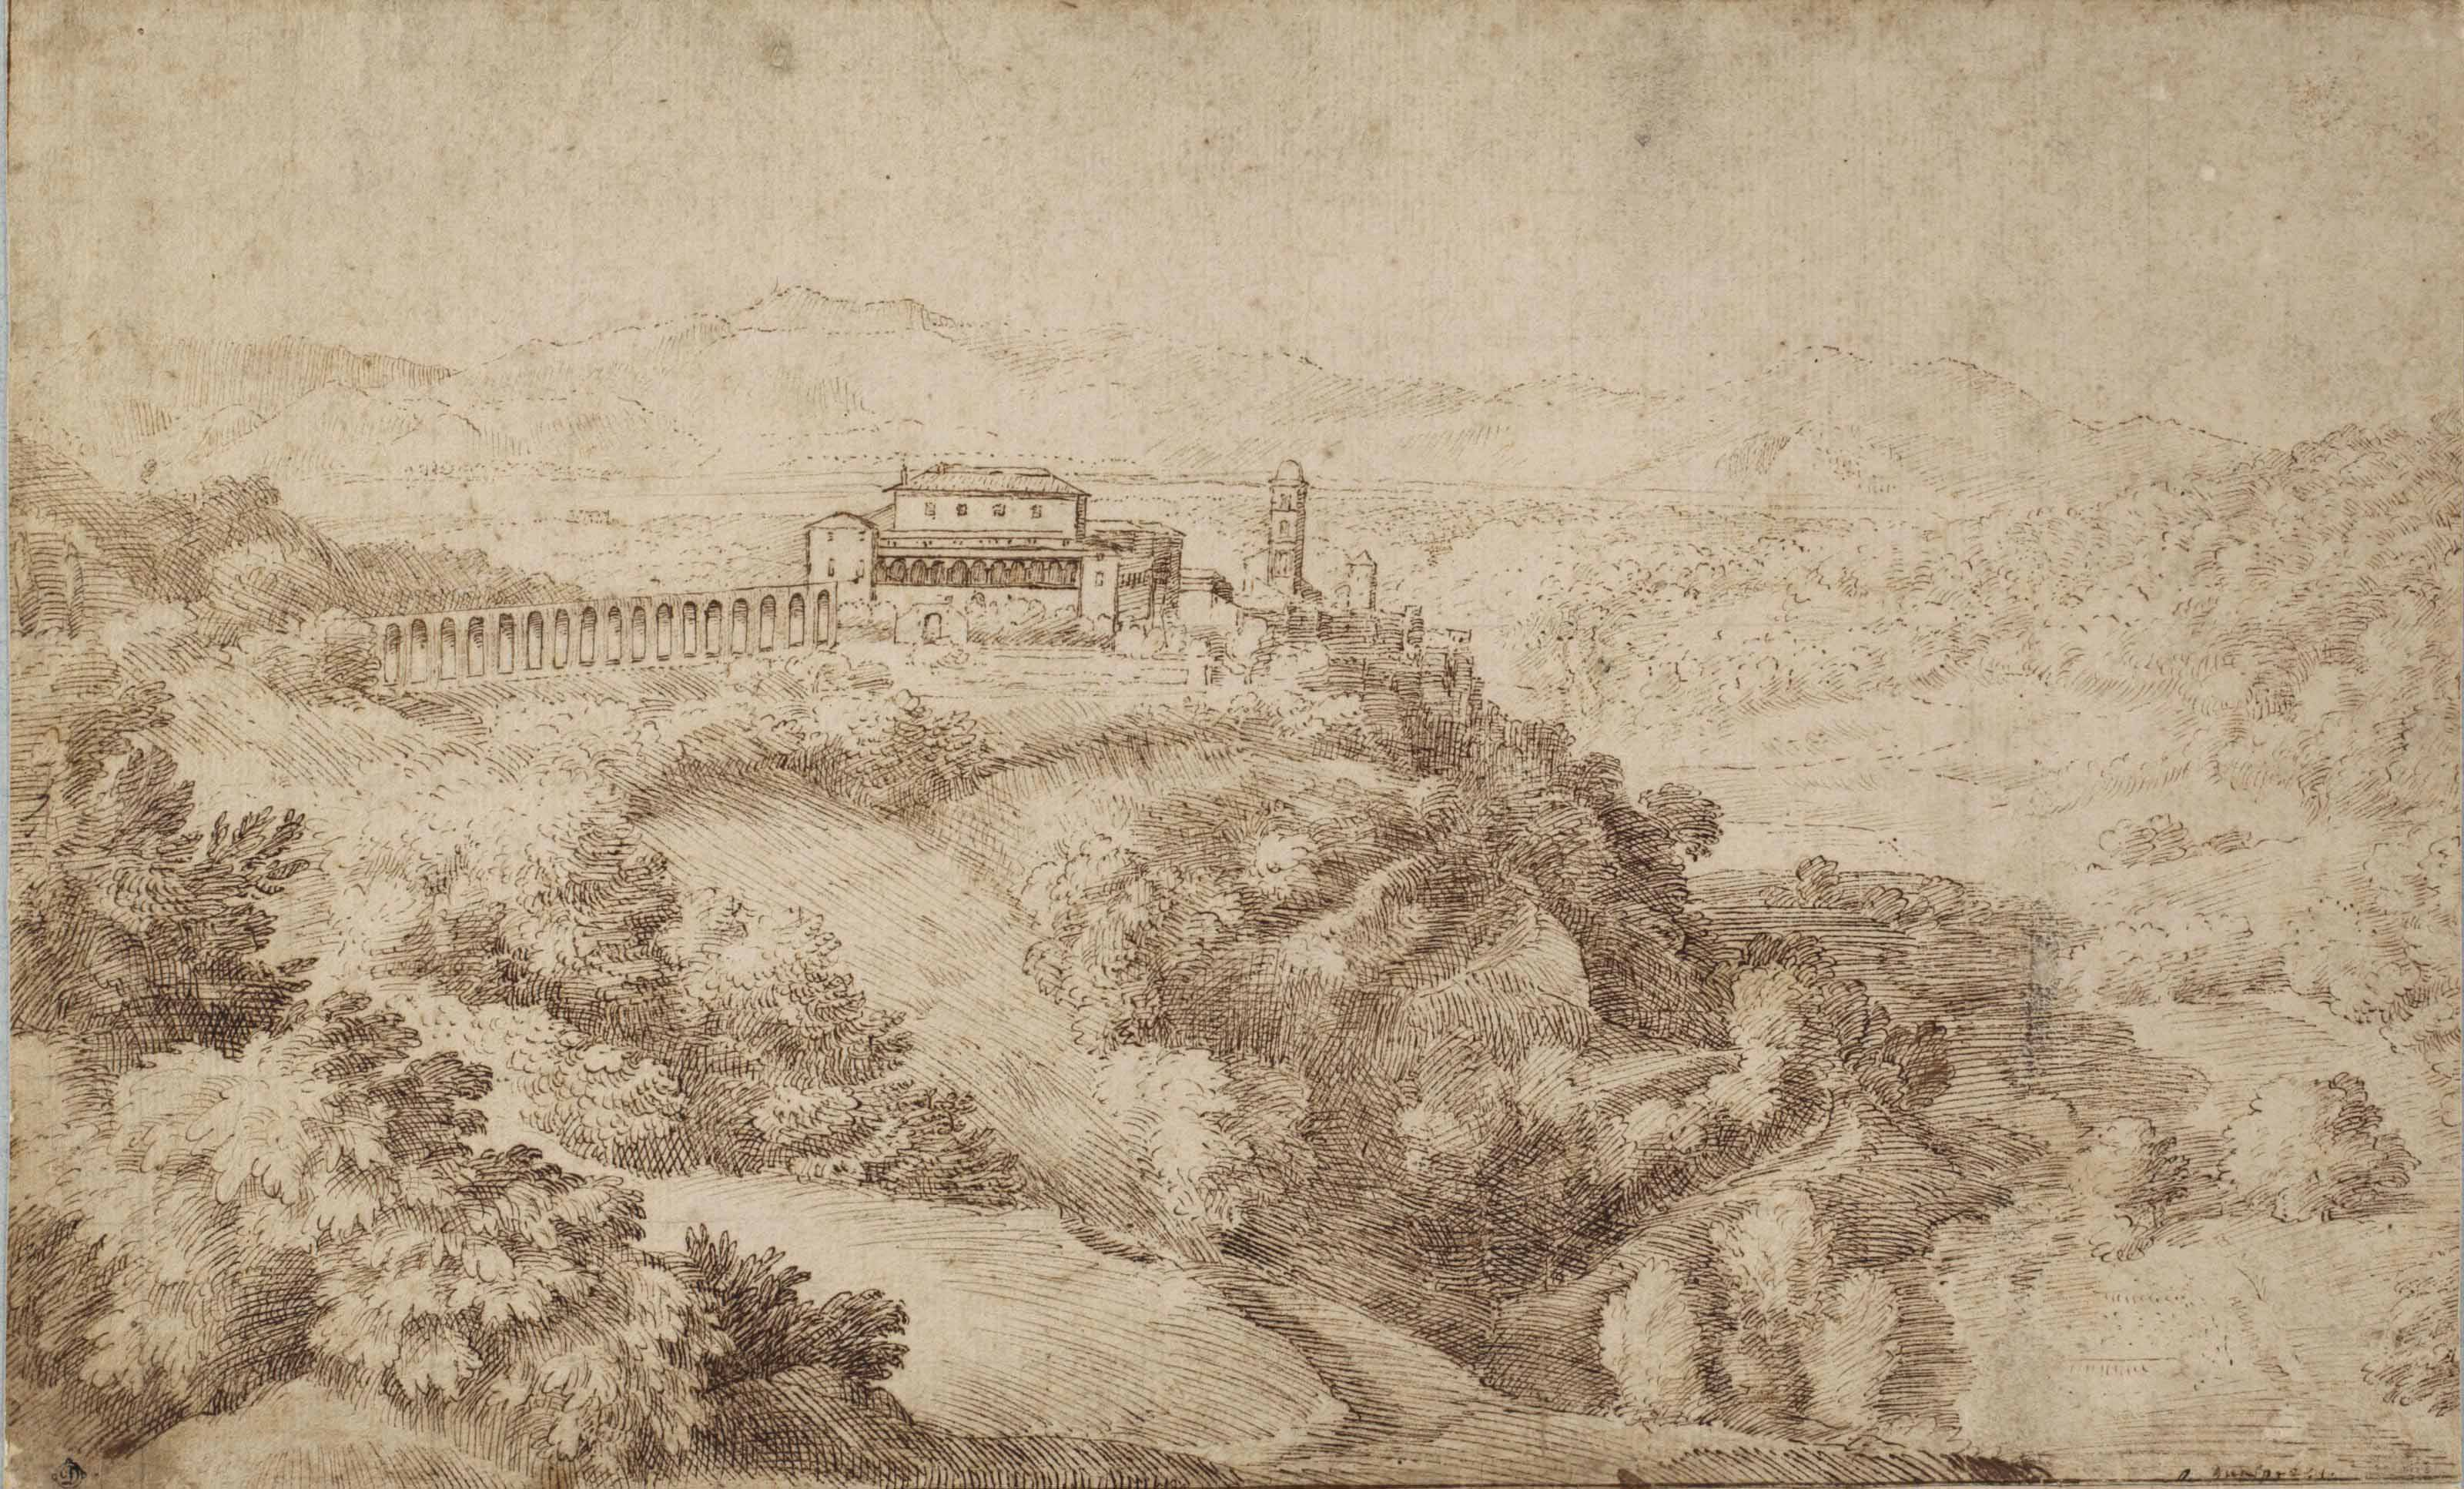 View of Genazzano with Castello Colonna and its aqueduct